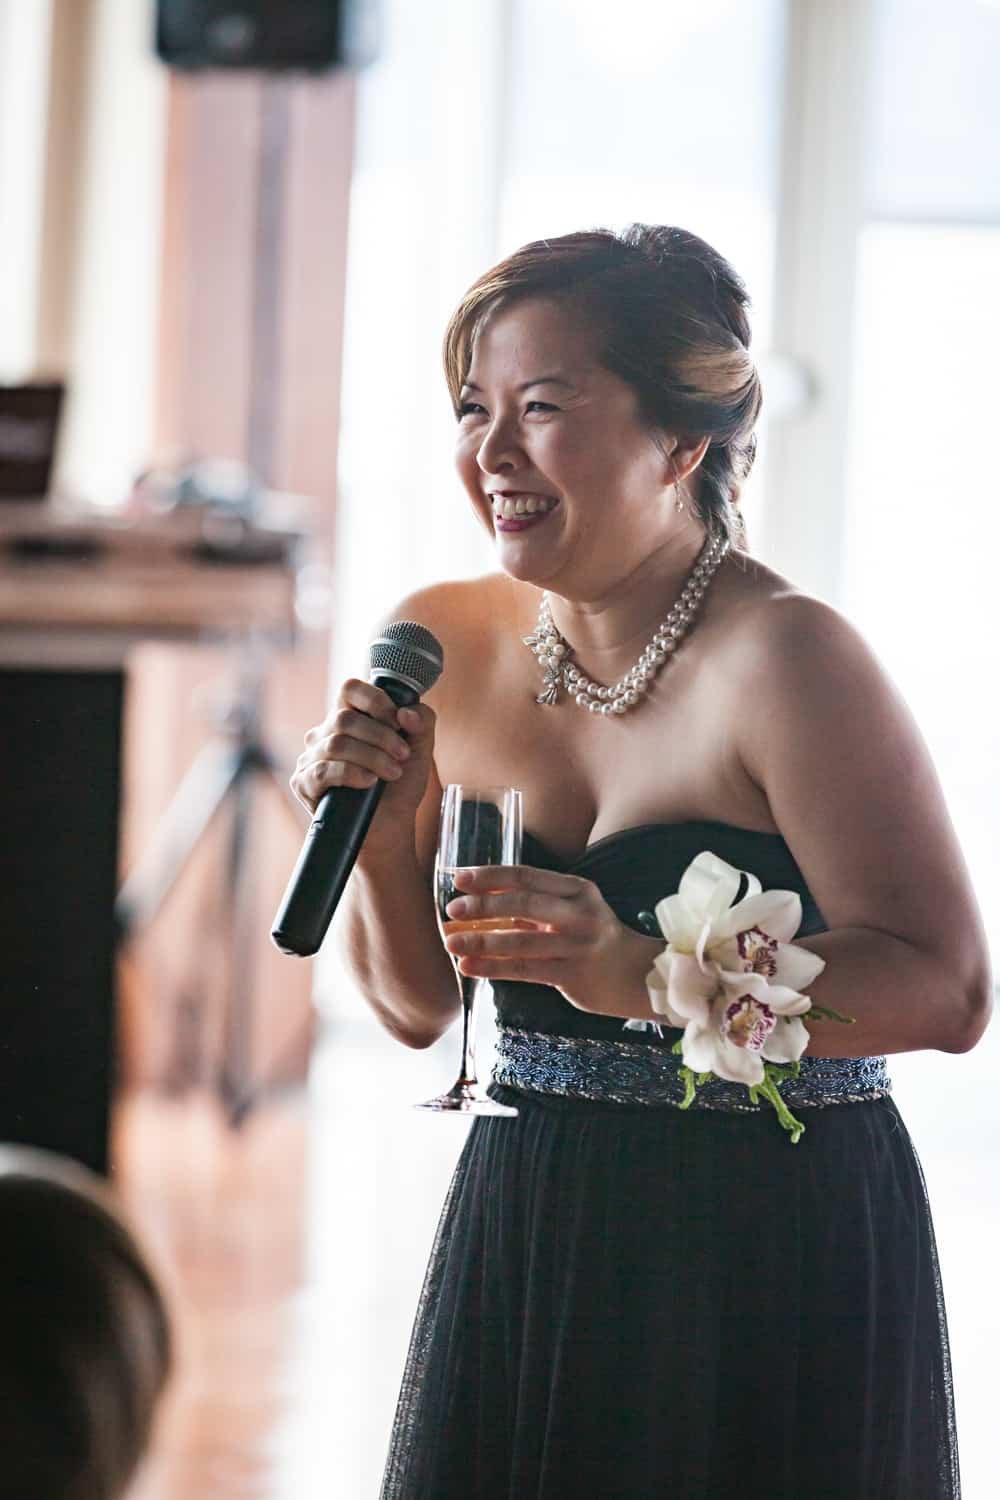 Maid of honor holding champagne glass and making speech into microphone